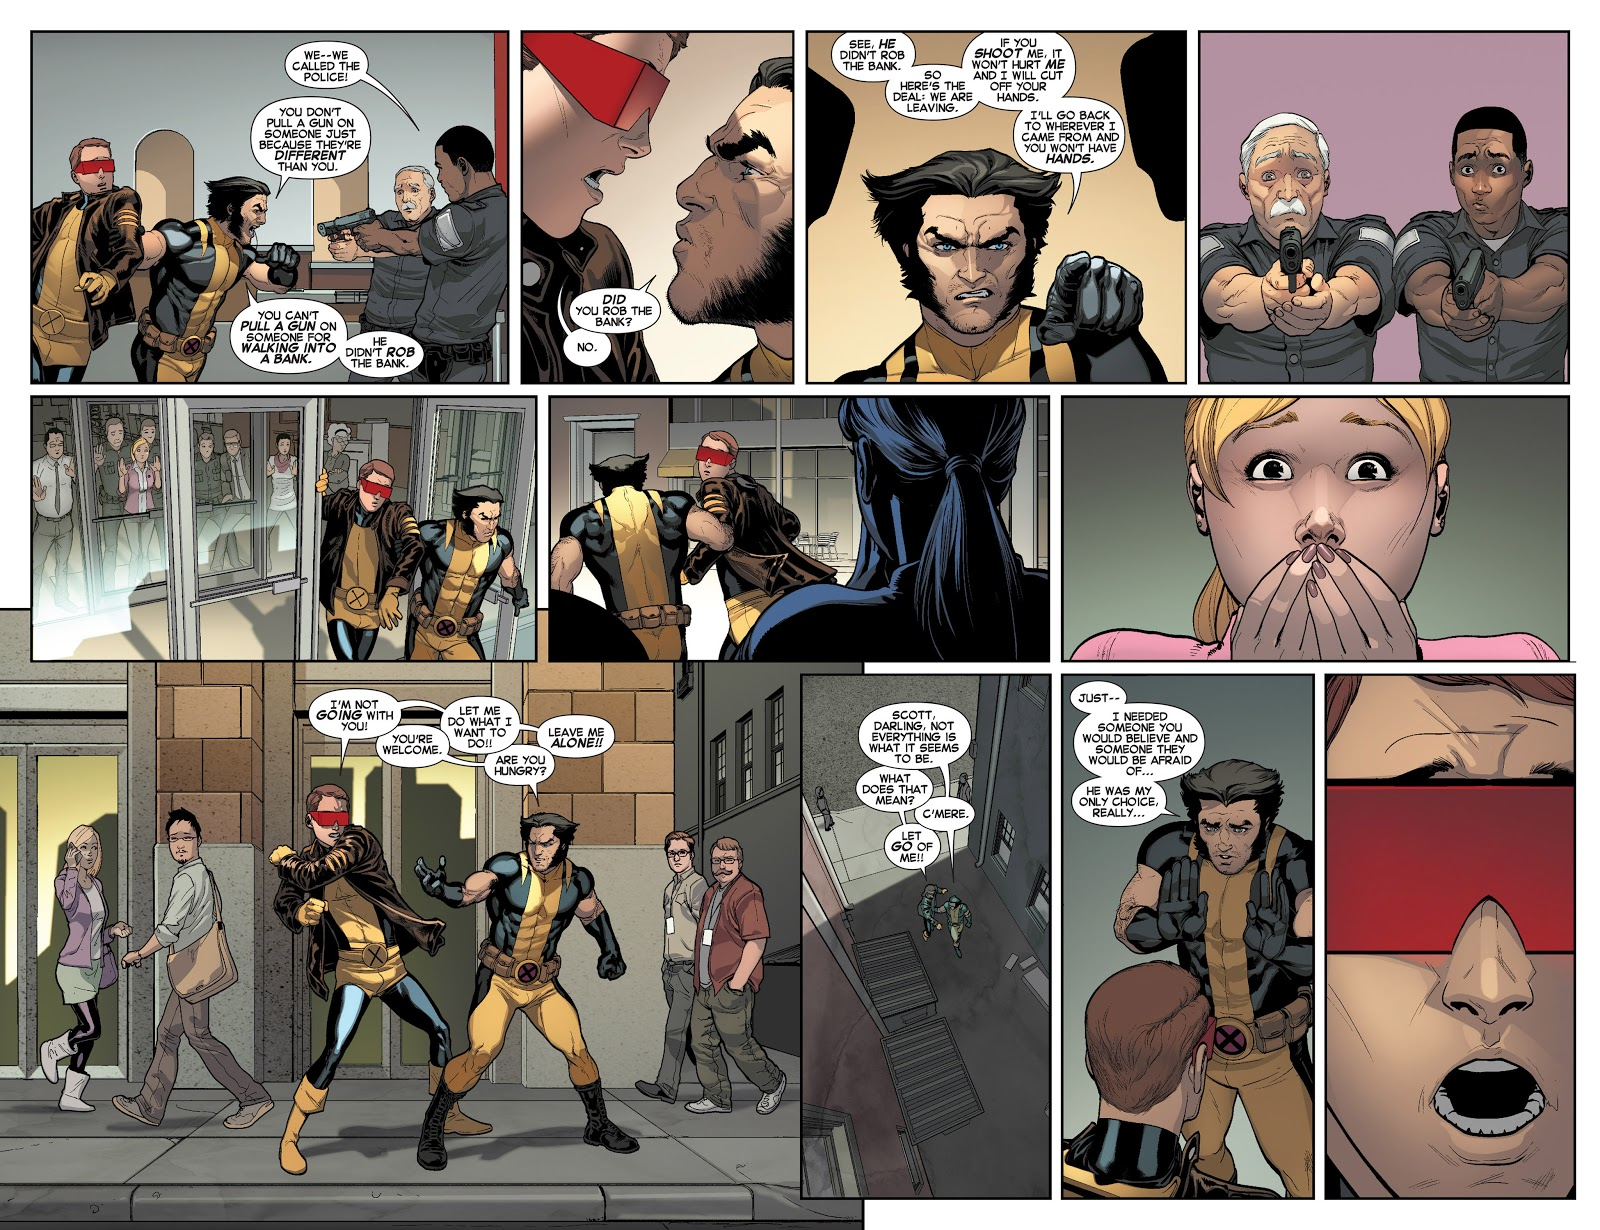 All New X-Men Here to Stay review